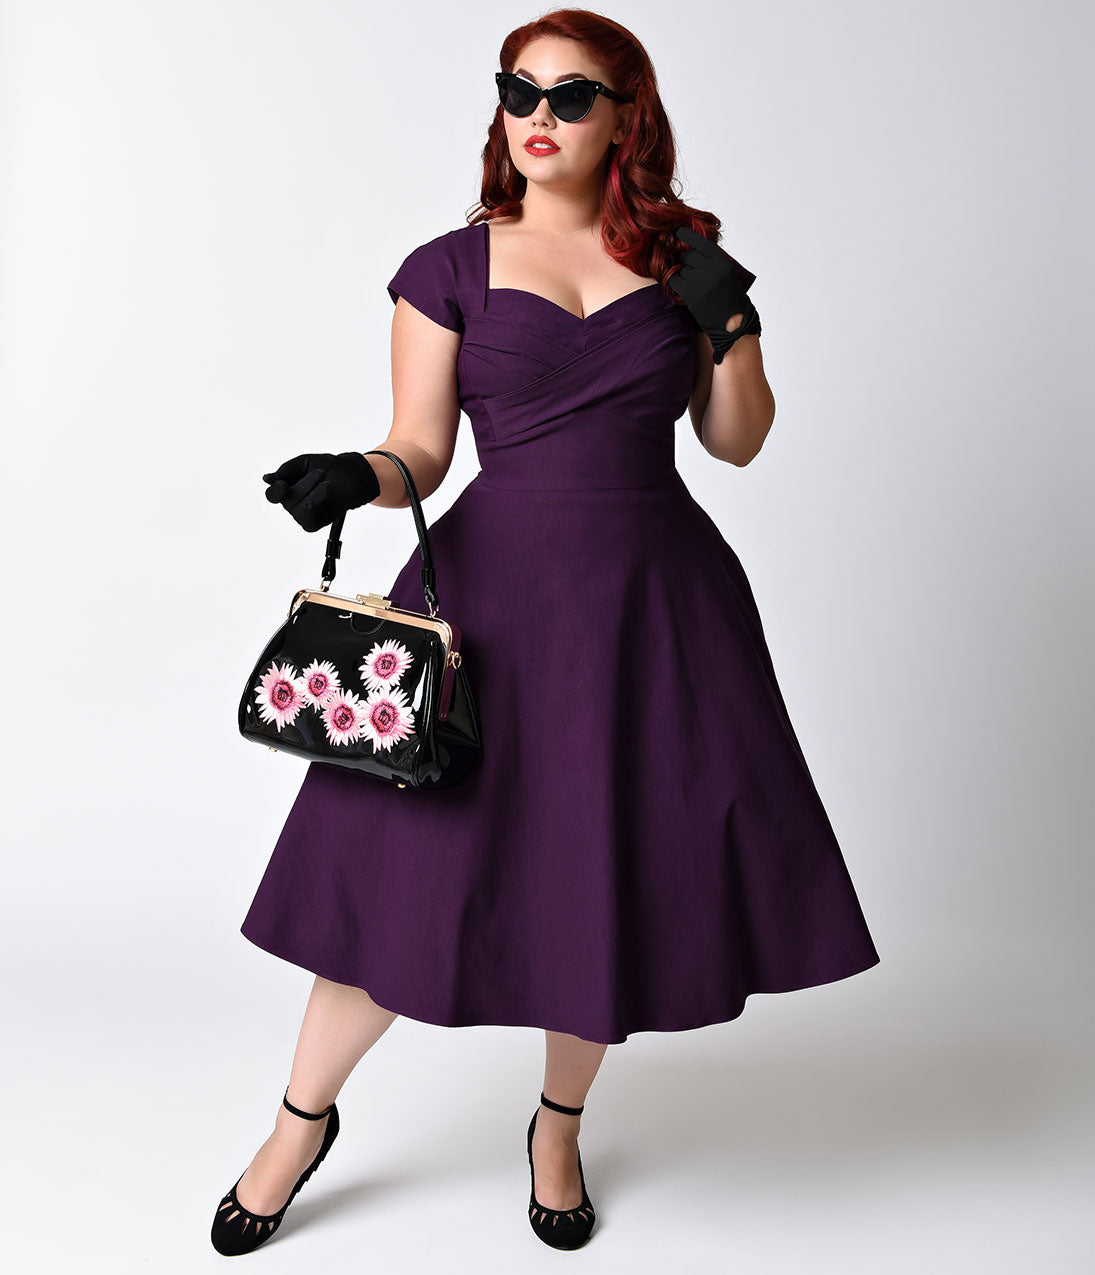 e10e87b72c0e Vintage Plus Size   Curve Clothing – Unique Vintage